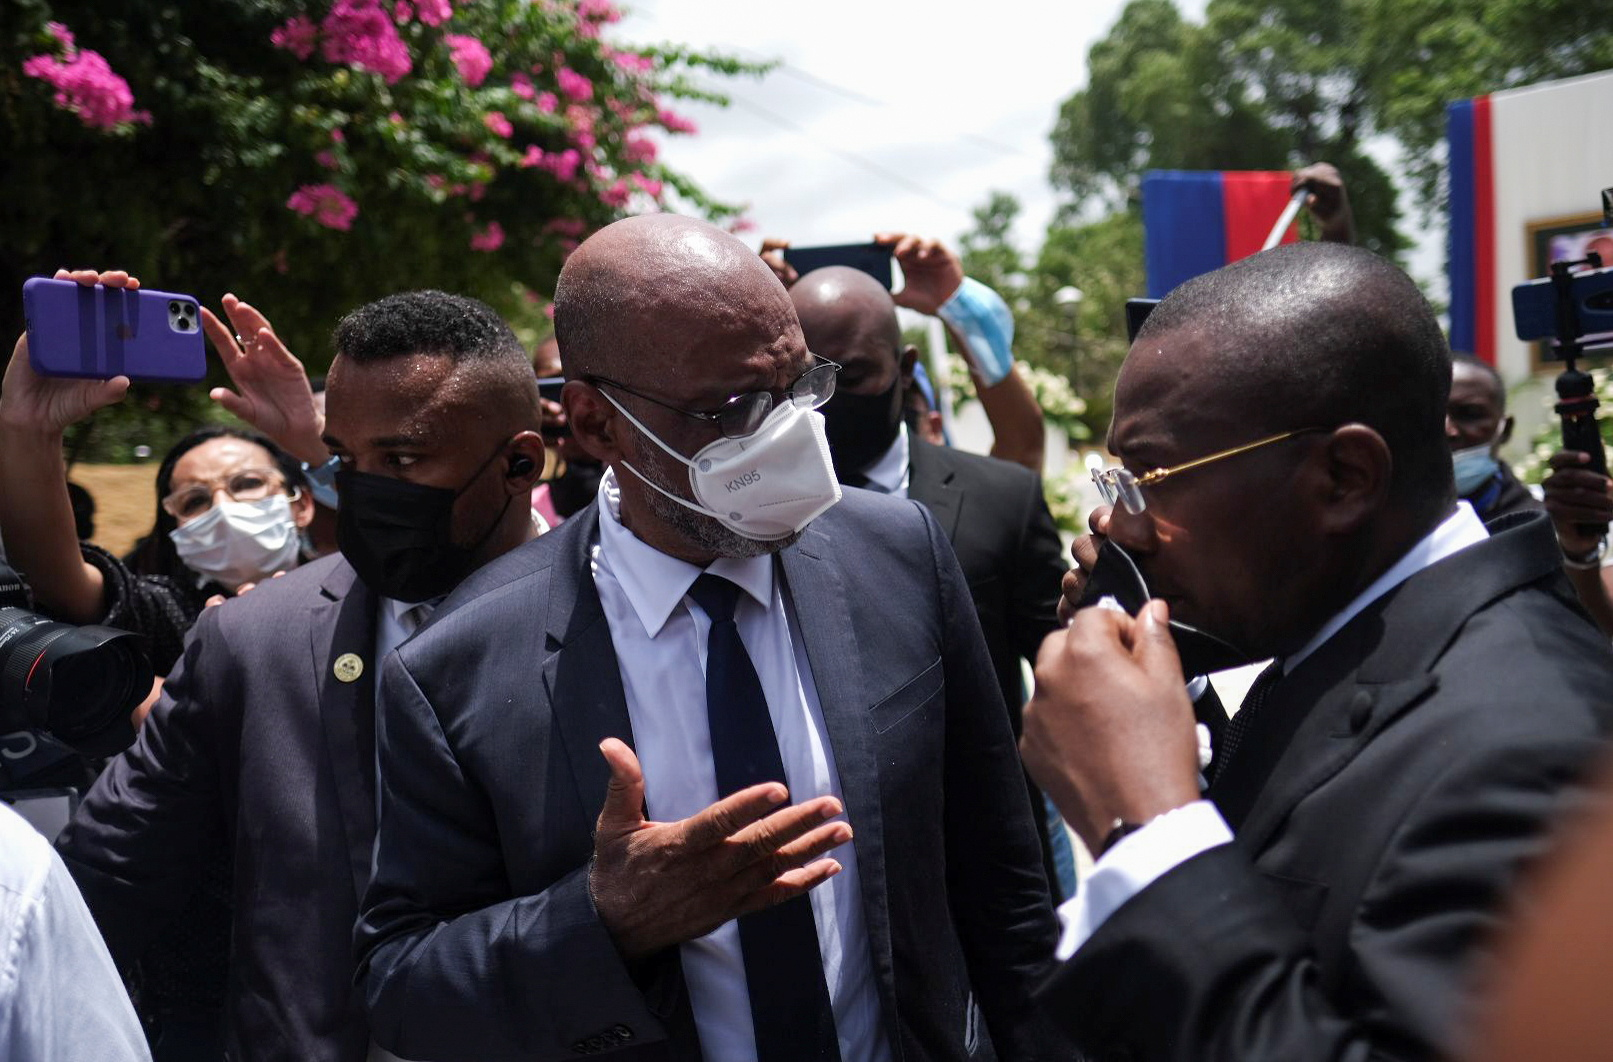 Haiti's interim Prime Minister Claude Joseph and Ariel Henry, tapped by late Haitian President Jovenel Moise to be the new prime minister just days before he was assassinated, chat at the official memorial services for Moise, in Port-au-Prince, Haiti July 20, 2021. REUTERS/Ricardo Arduengo